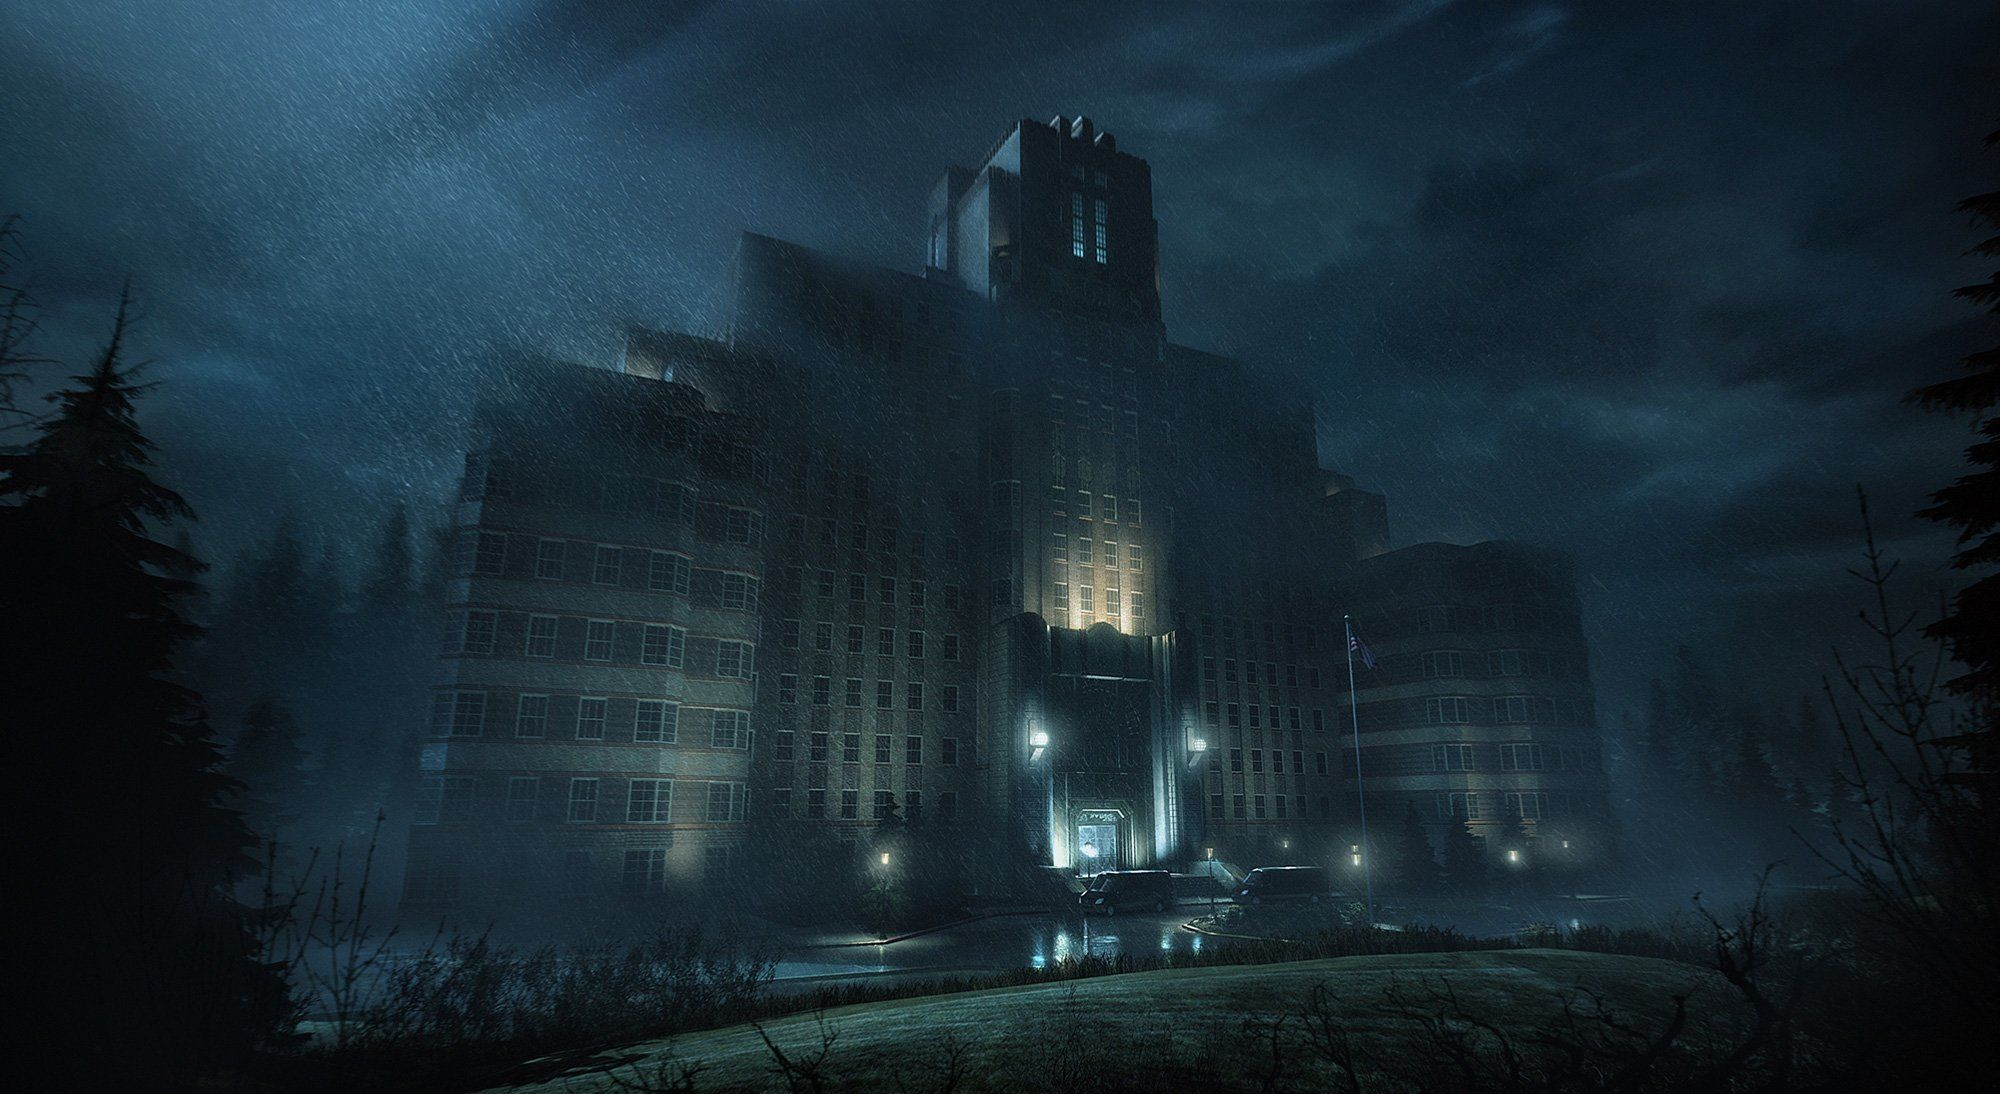 Paradox teasing possible Vampire: The Masquerade reveal on March 21